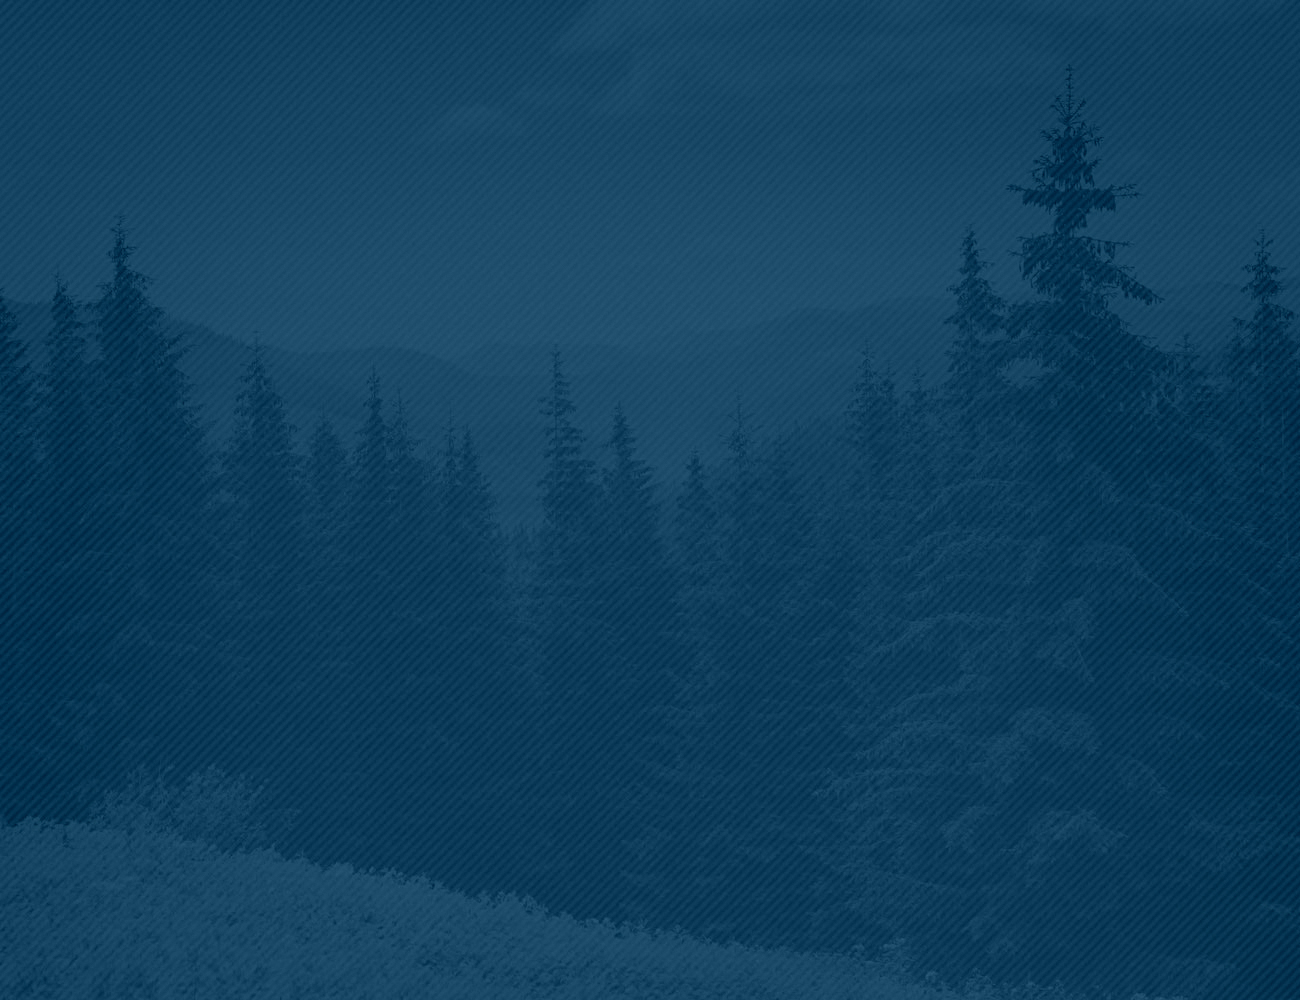 forest_background_blue